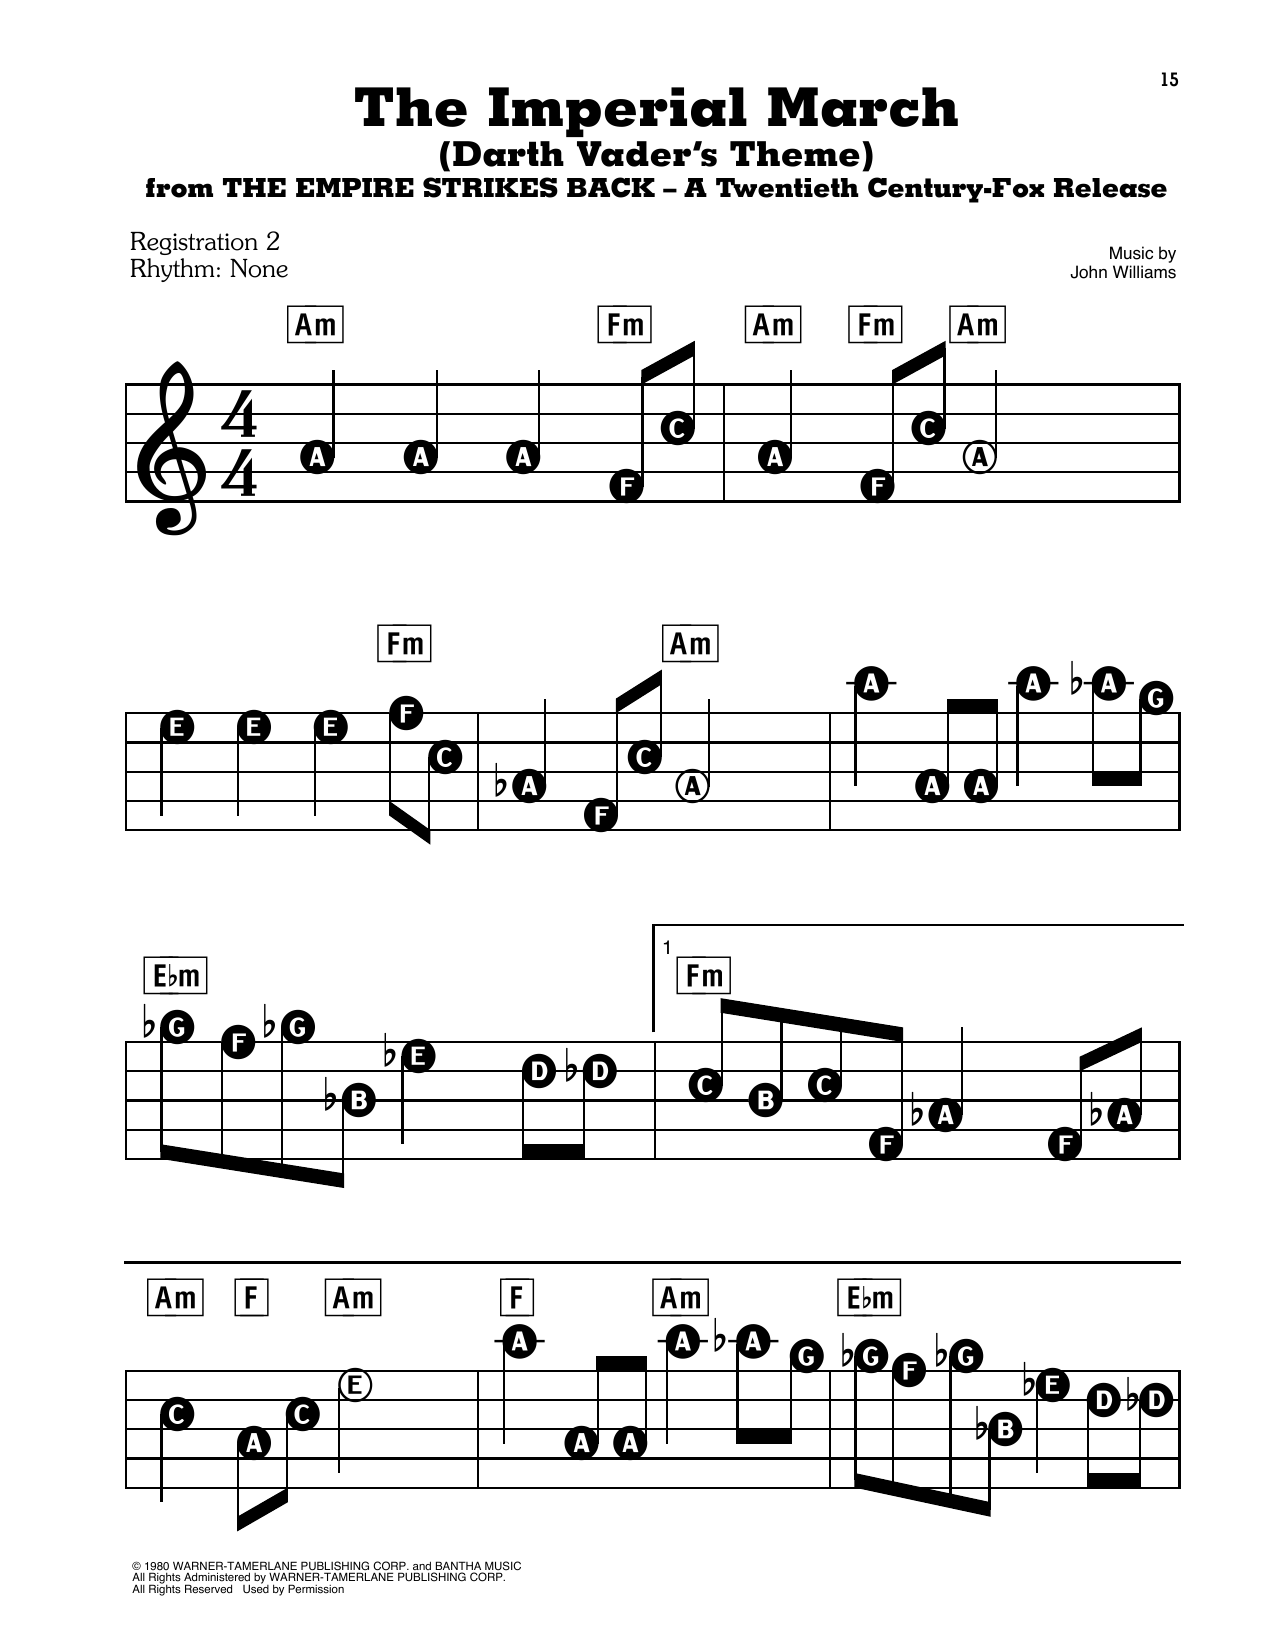 The Imperial March (Darth Vader's Theme) (from Star Wars: The Empire Strikes Back) Sheet Music